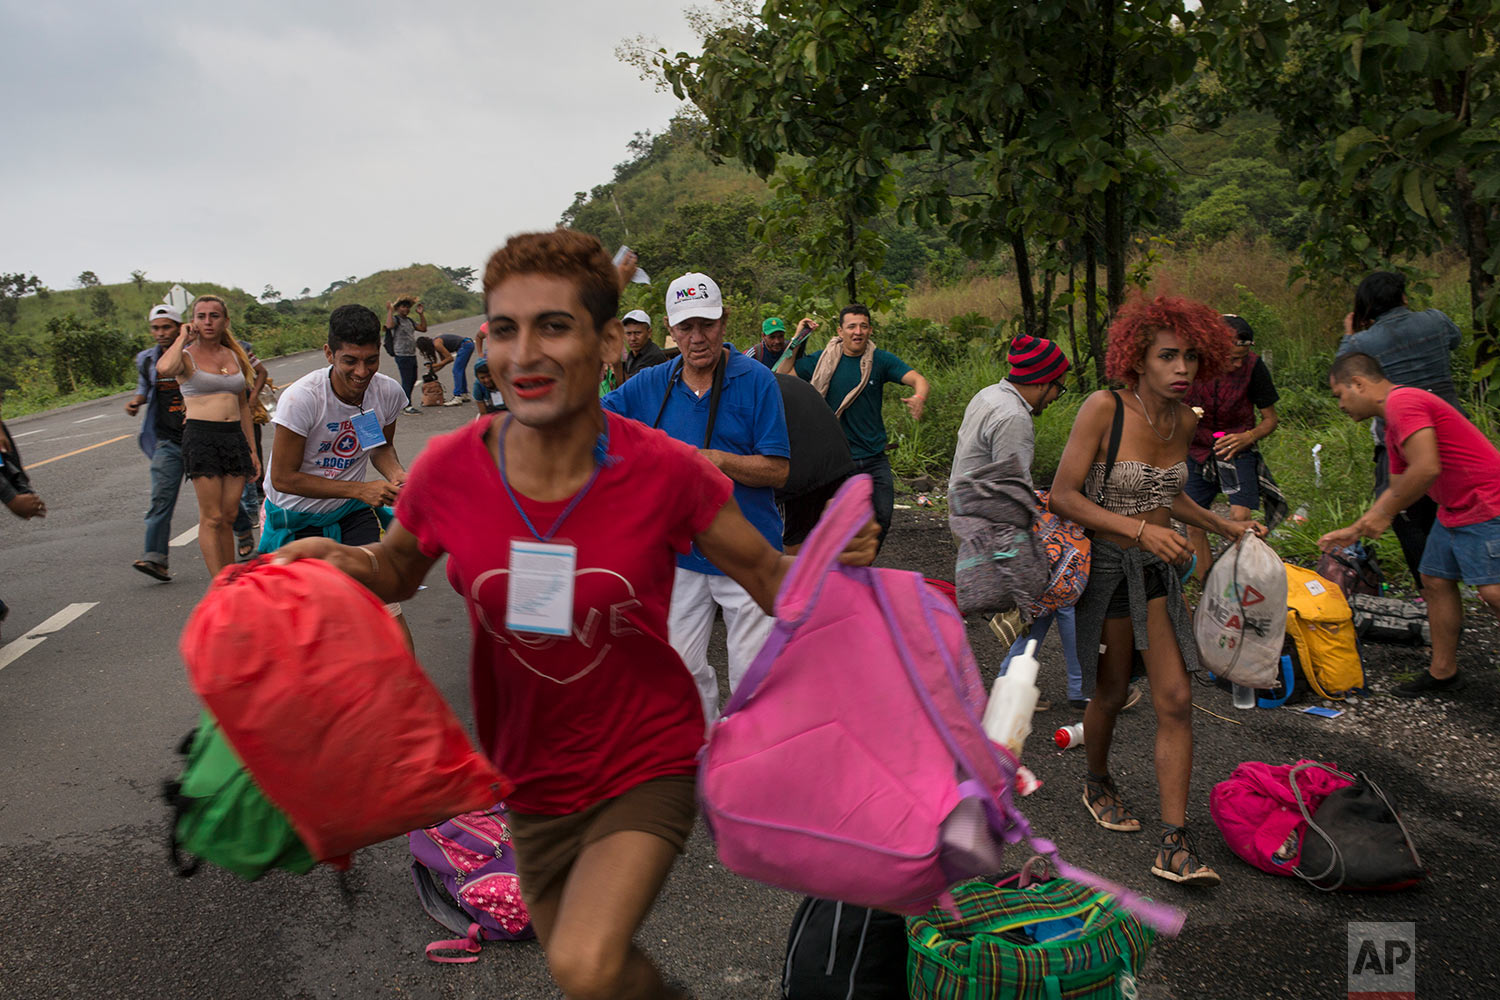 In this Nov. 2, 2018 photo, members of a LGBTQ group who are traveling with the Central American migrants caravan hoping to reach the U.S. border, run towards a truck who stopped to give them a ride, on the road to Sayula, Mexico. (AP Photo/Rodrigo Abd)